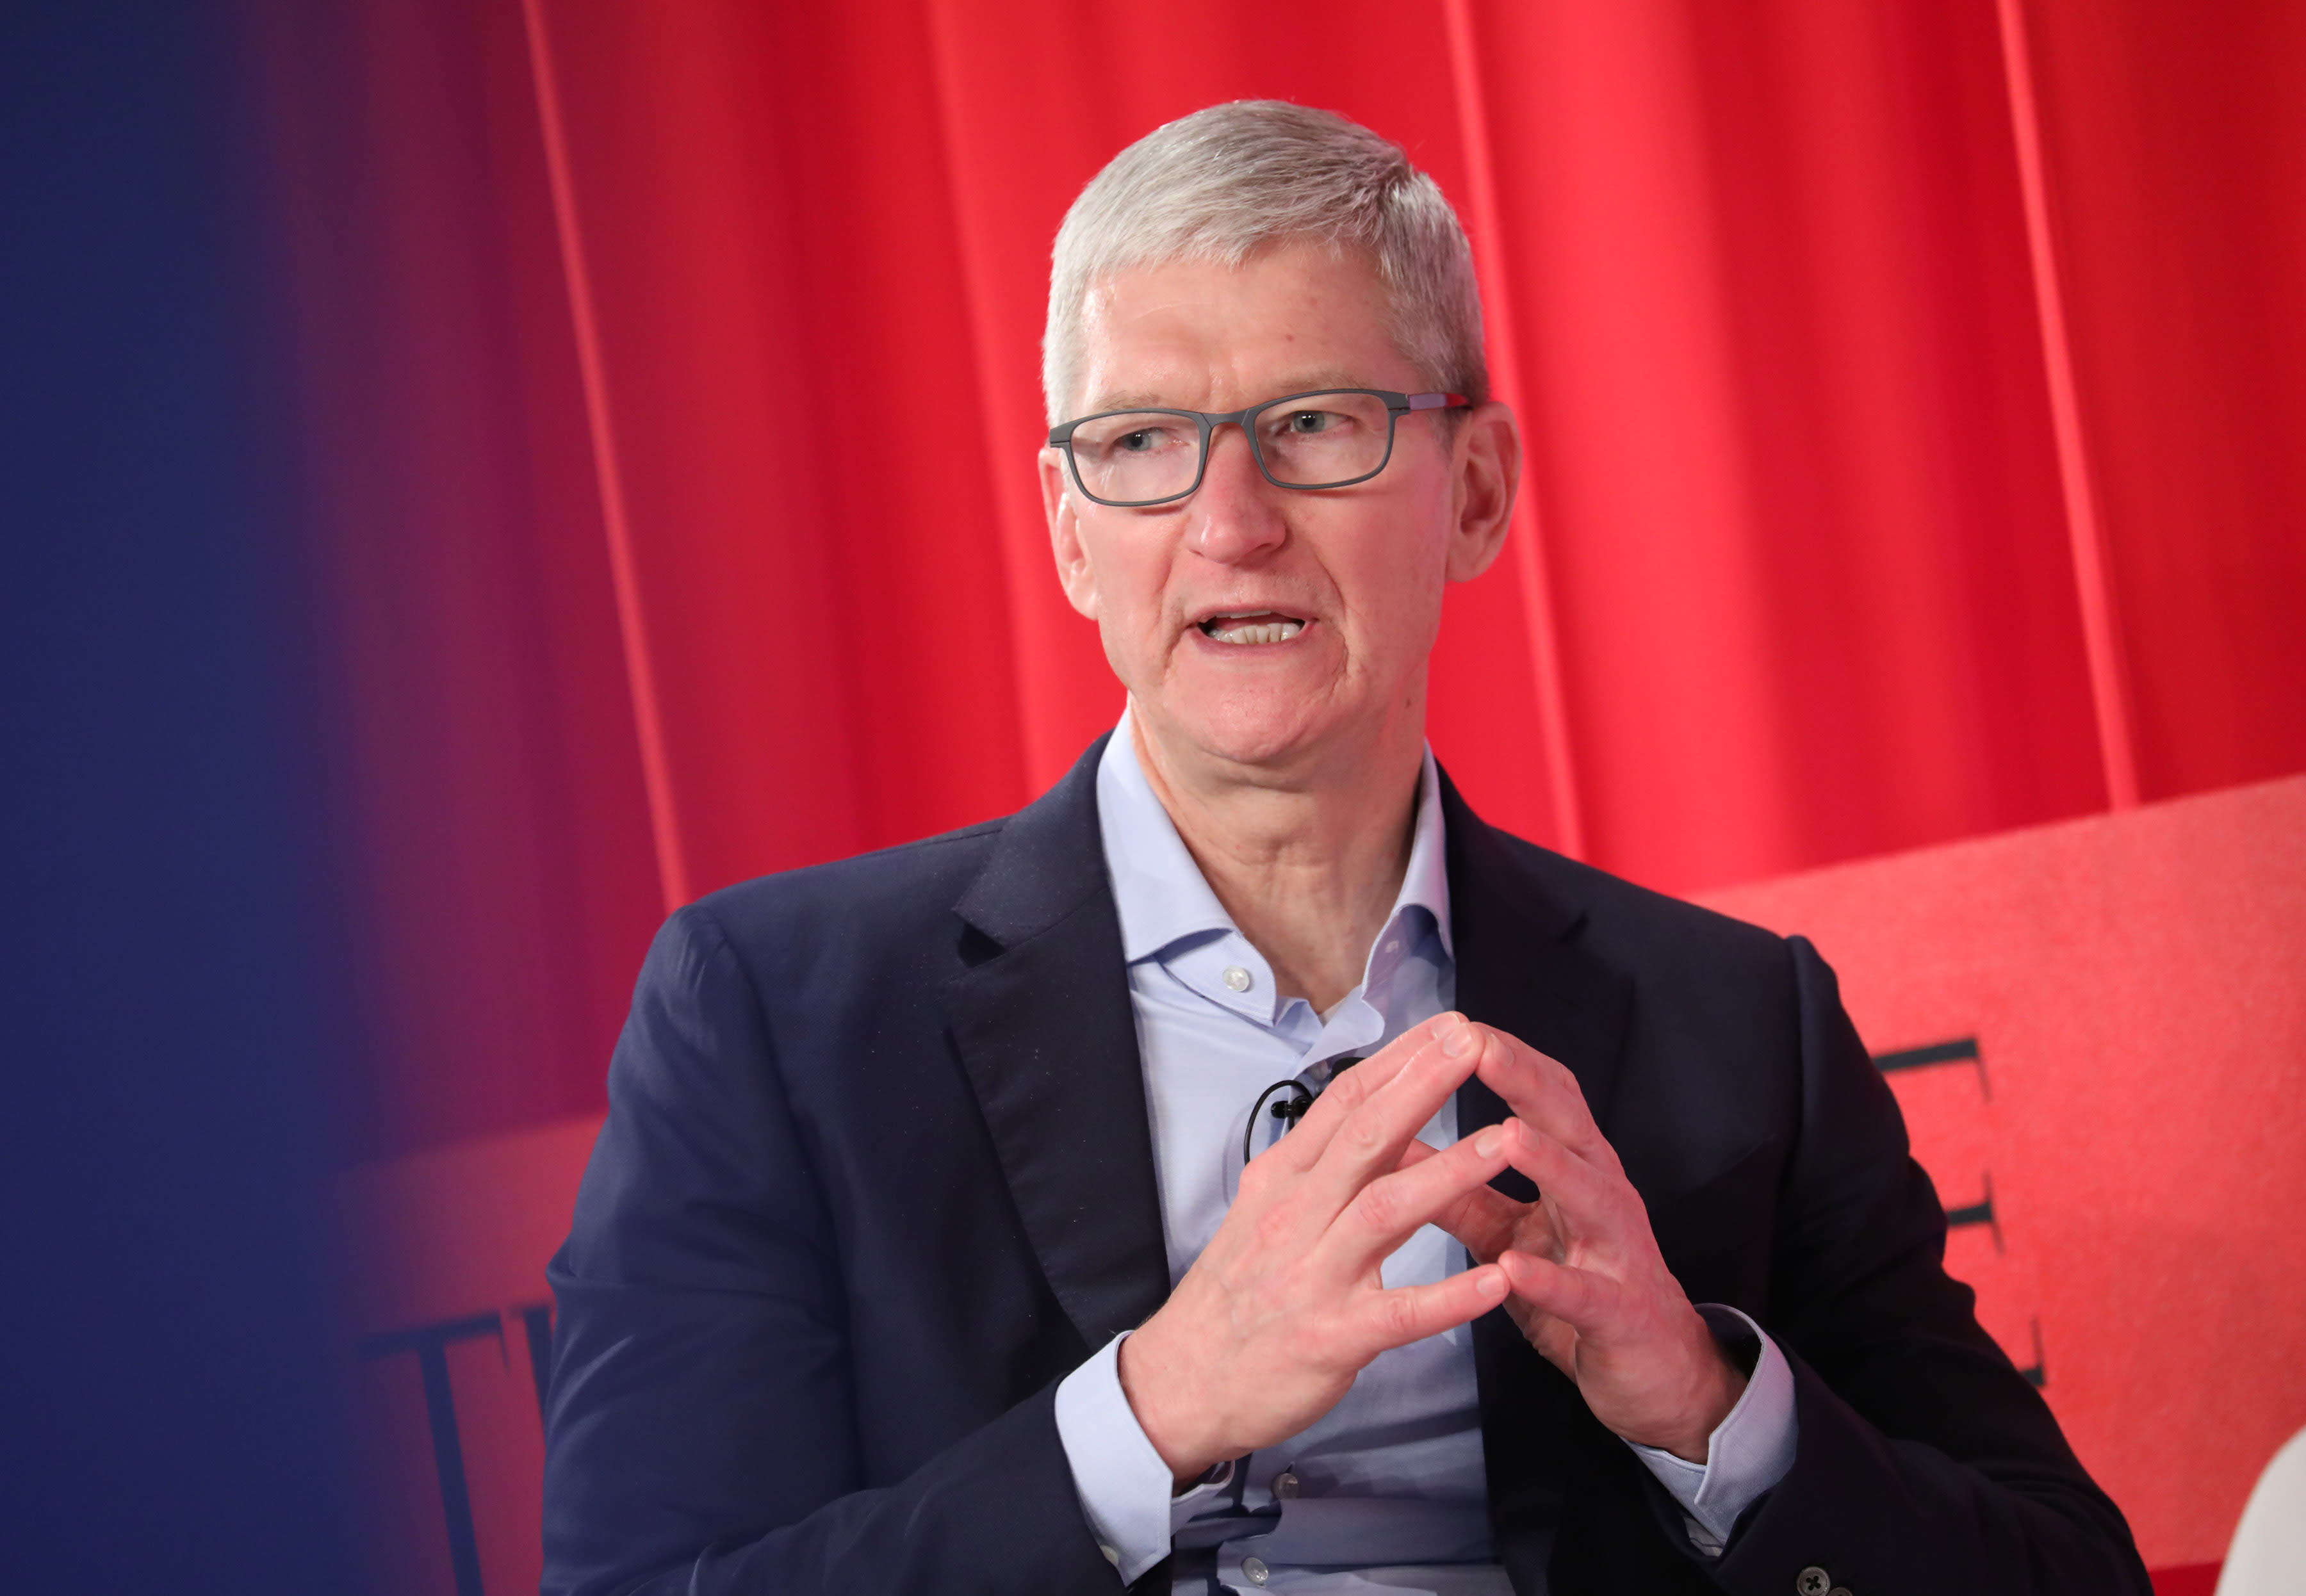 The multi-billion dollar search deal between Google and Apple took four months working 'every single day'